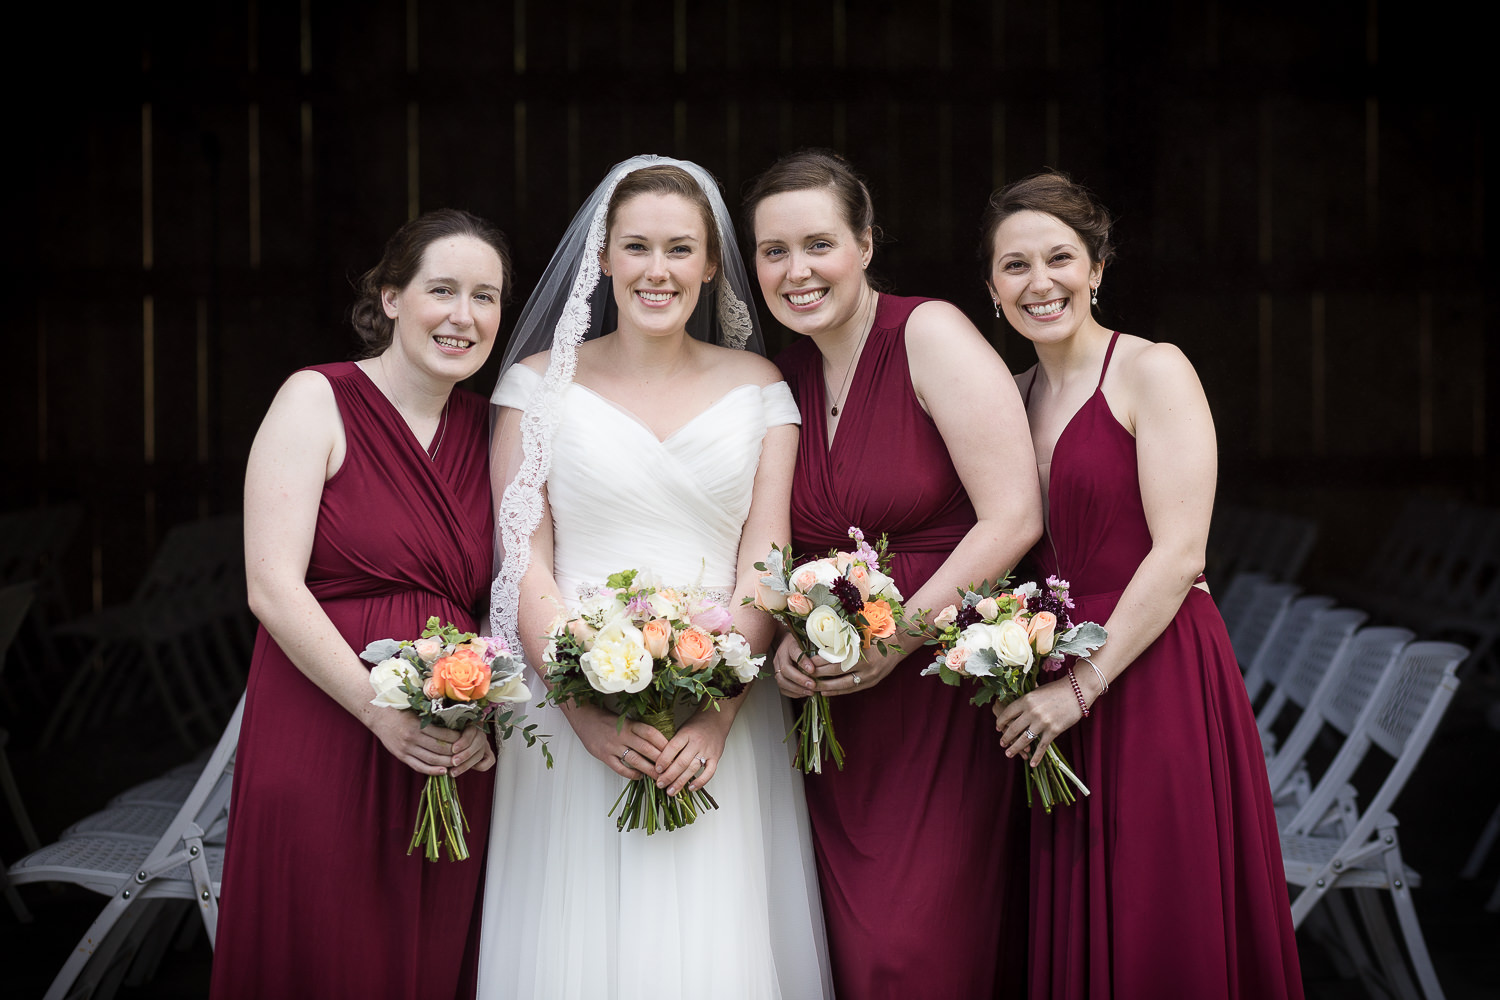 A portrait of the bridesmaids a the Jay Peak Resort by photographer Stina Booth